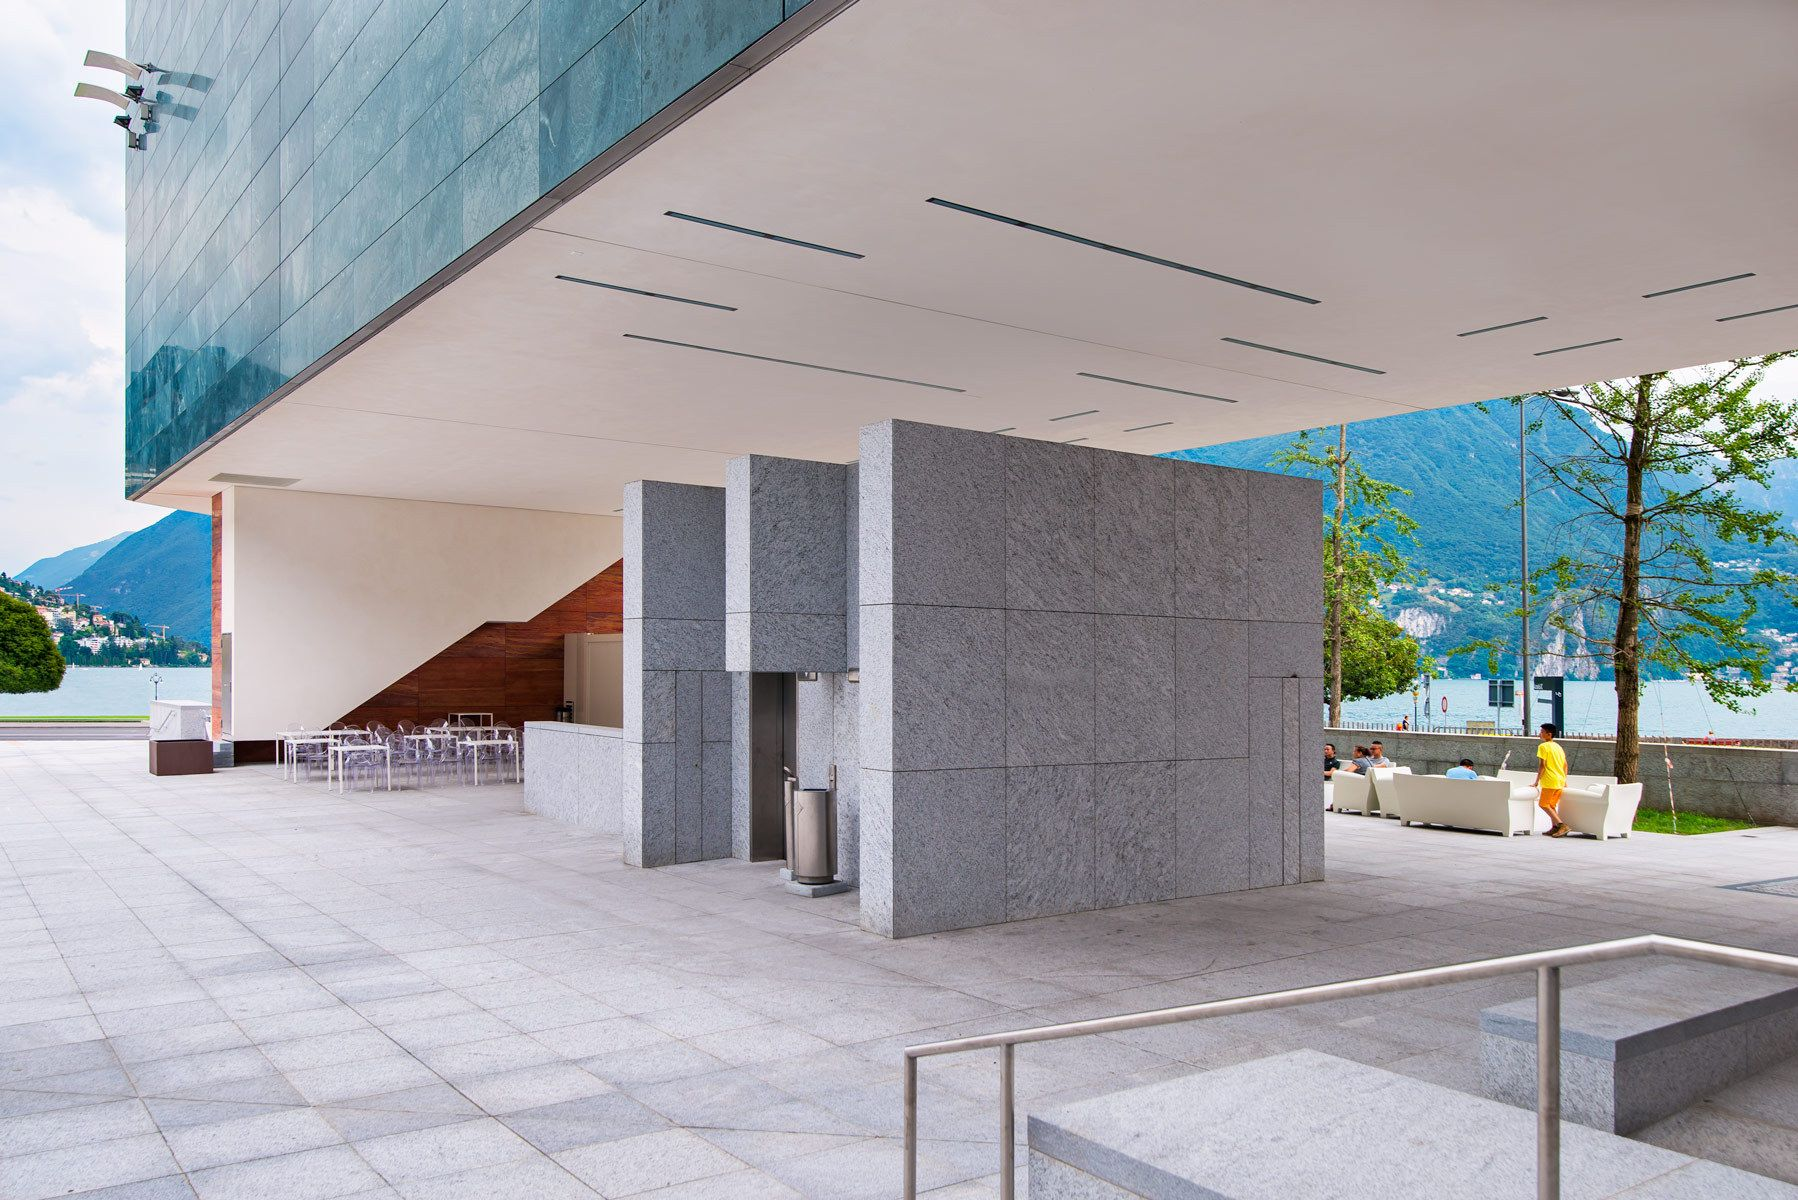 Lugano Center for Arts and CultureLugano, Switzerland